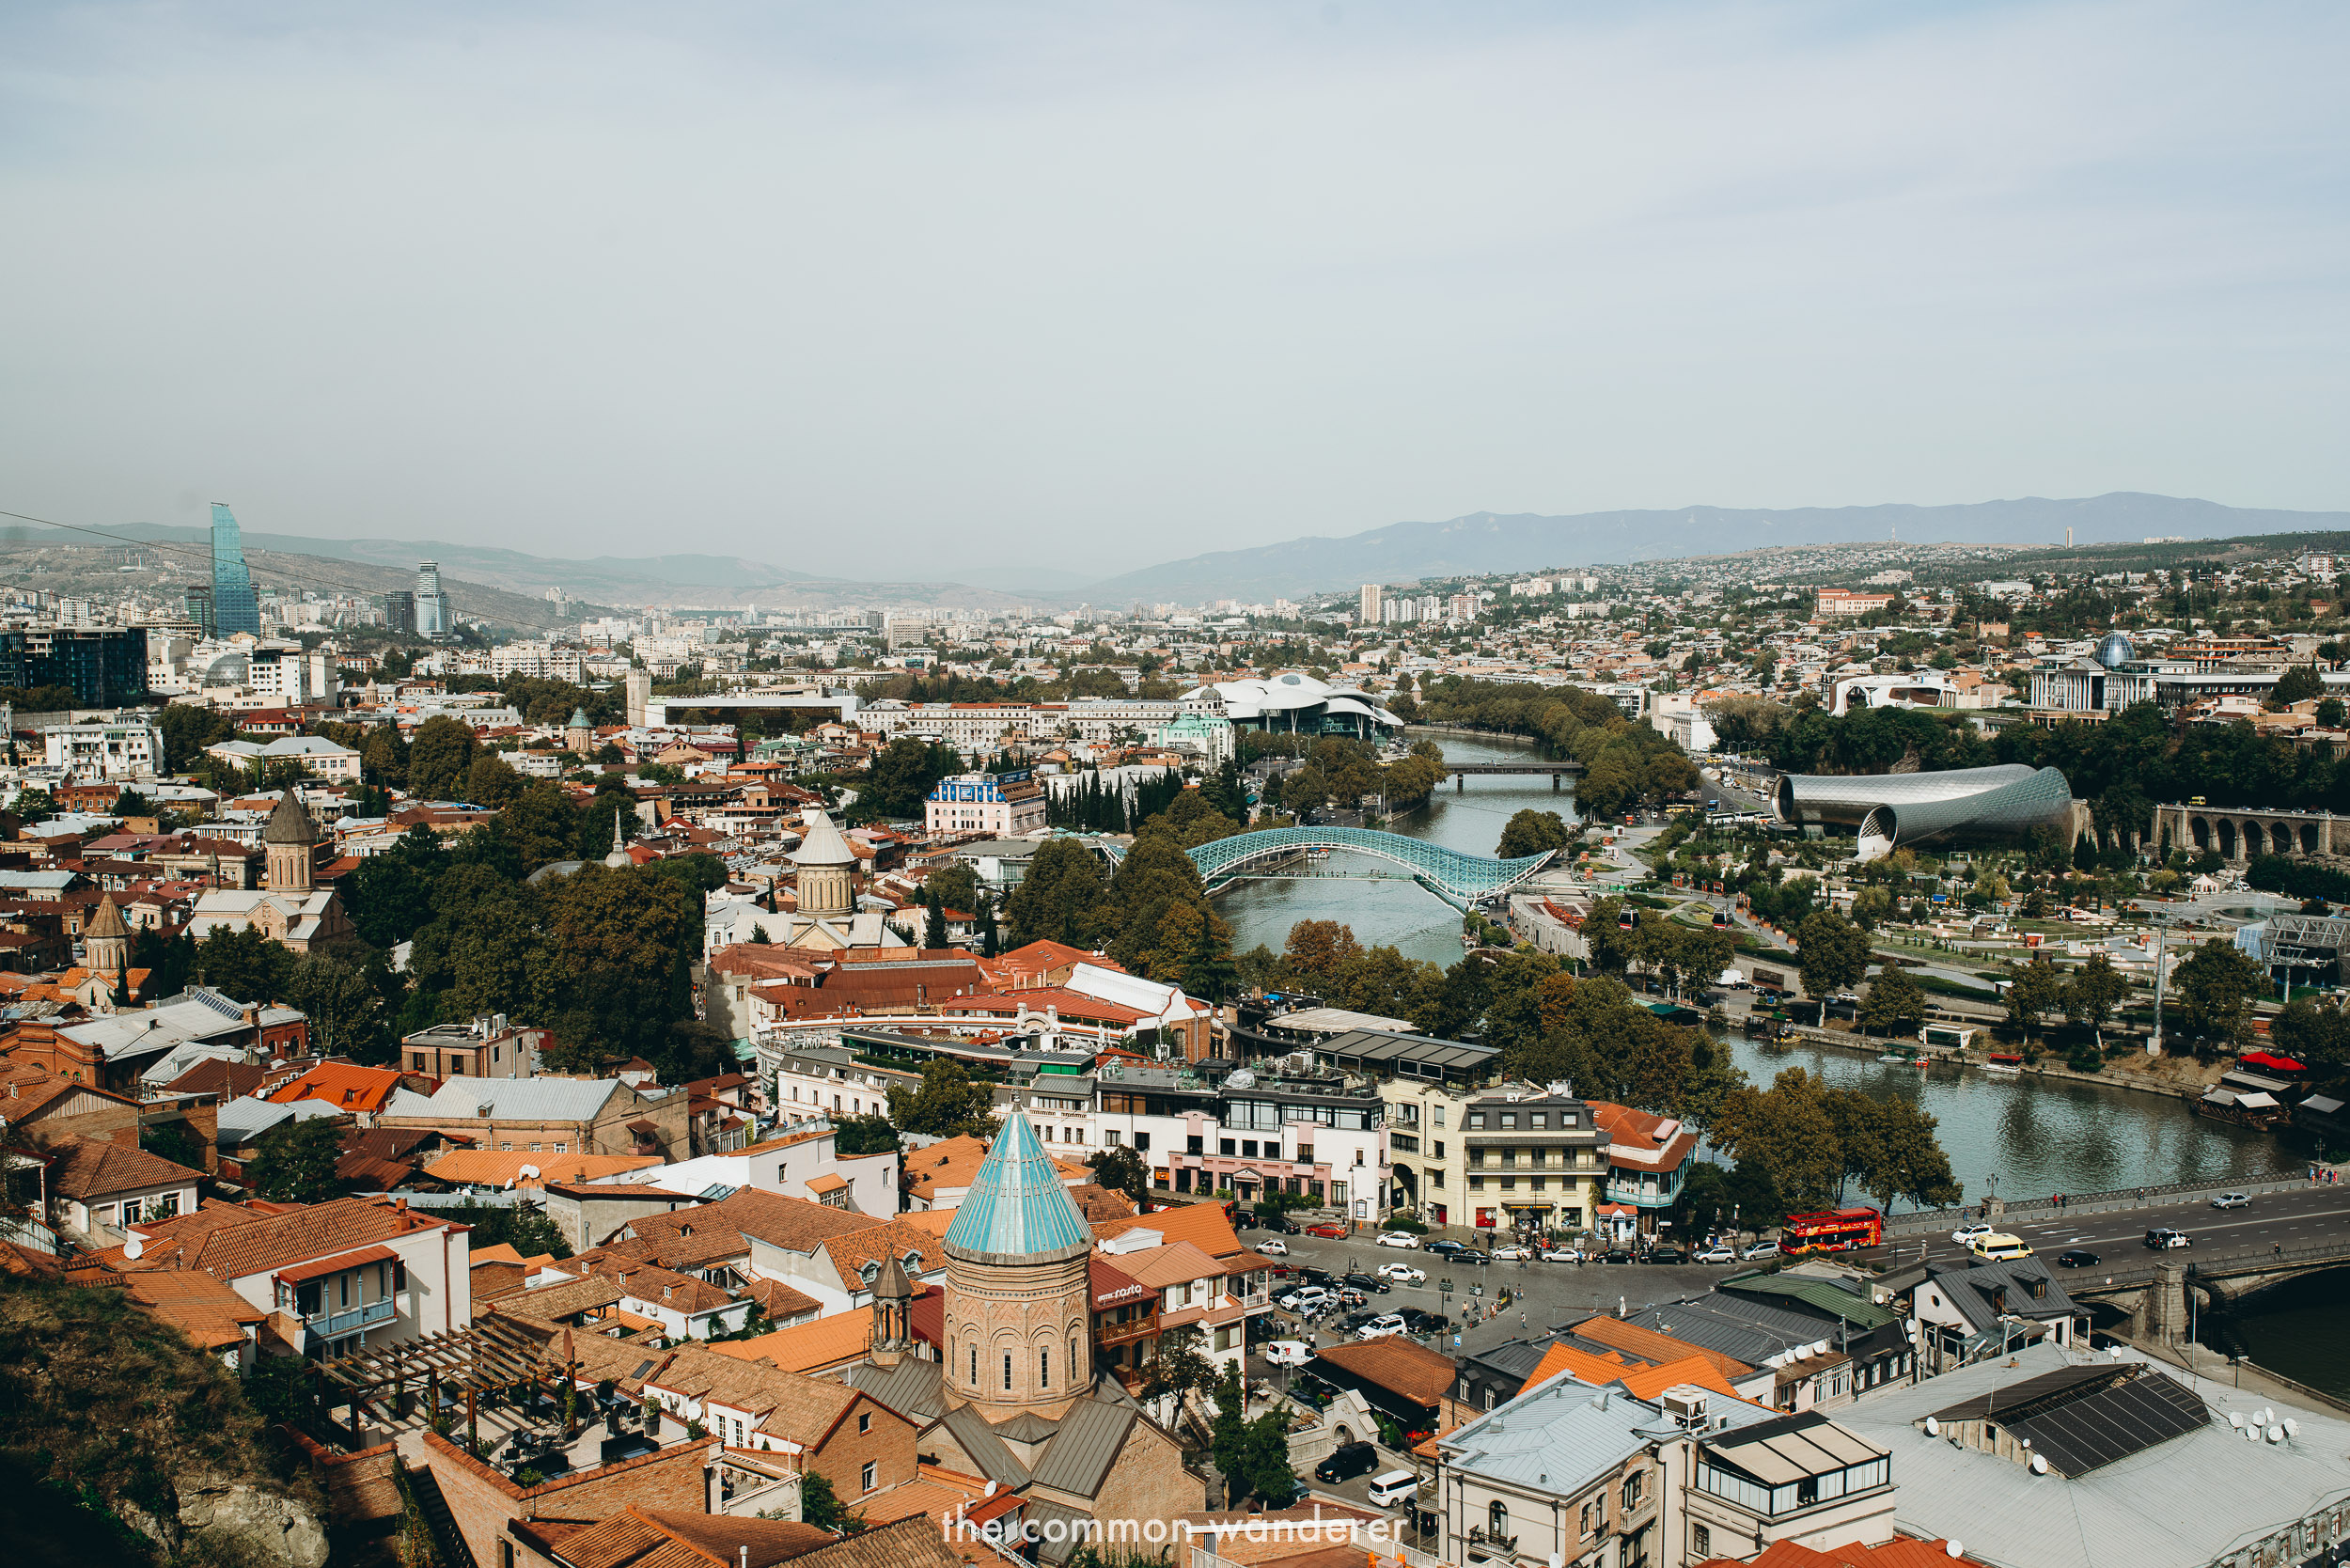 Overlooking the capital of Georgia, Tbilisi